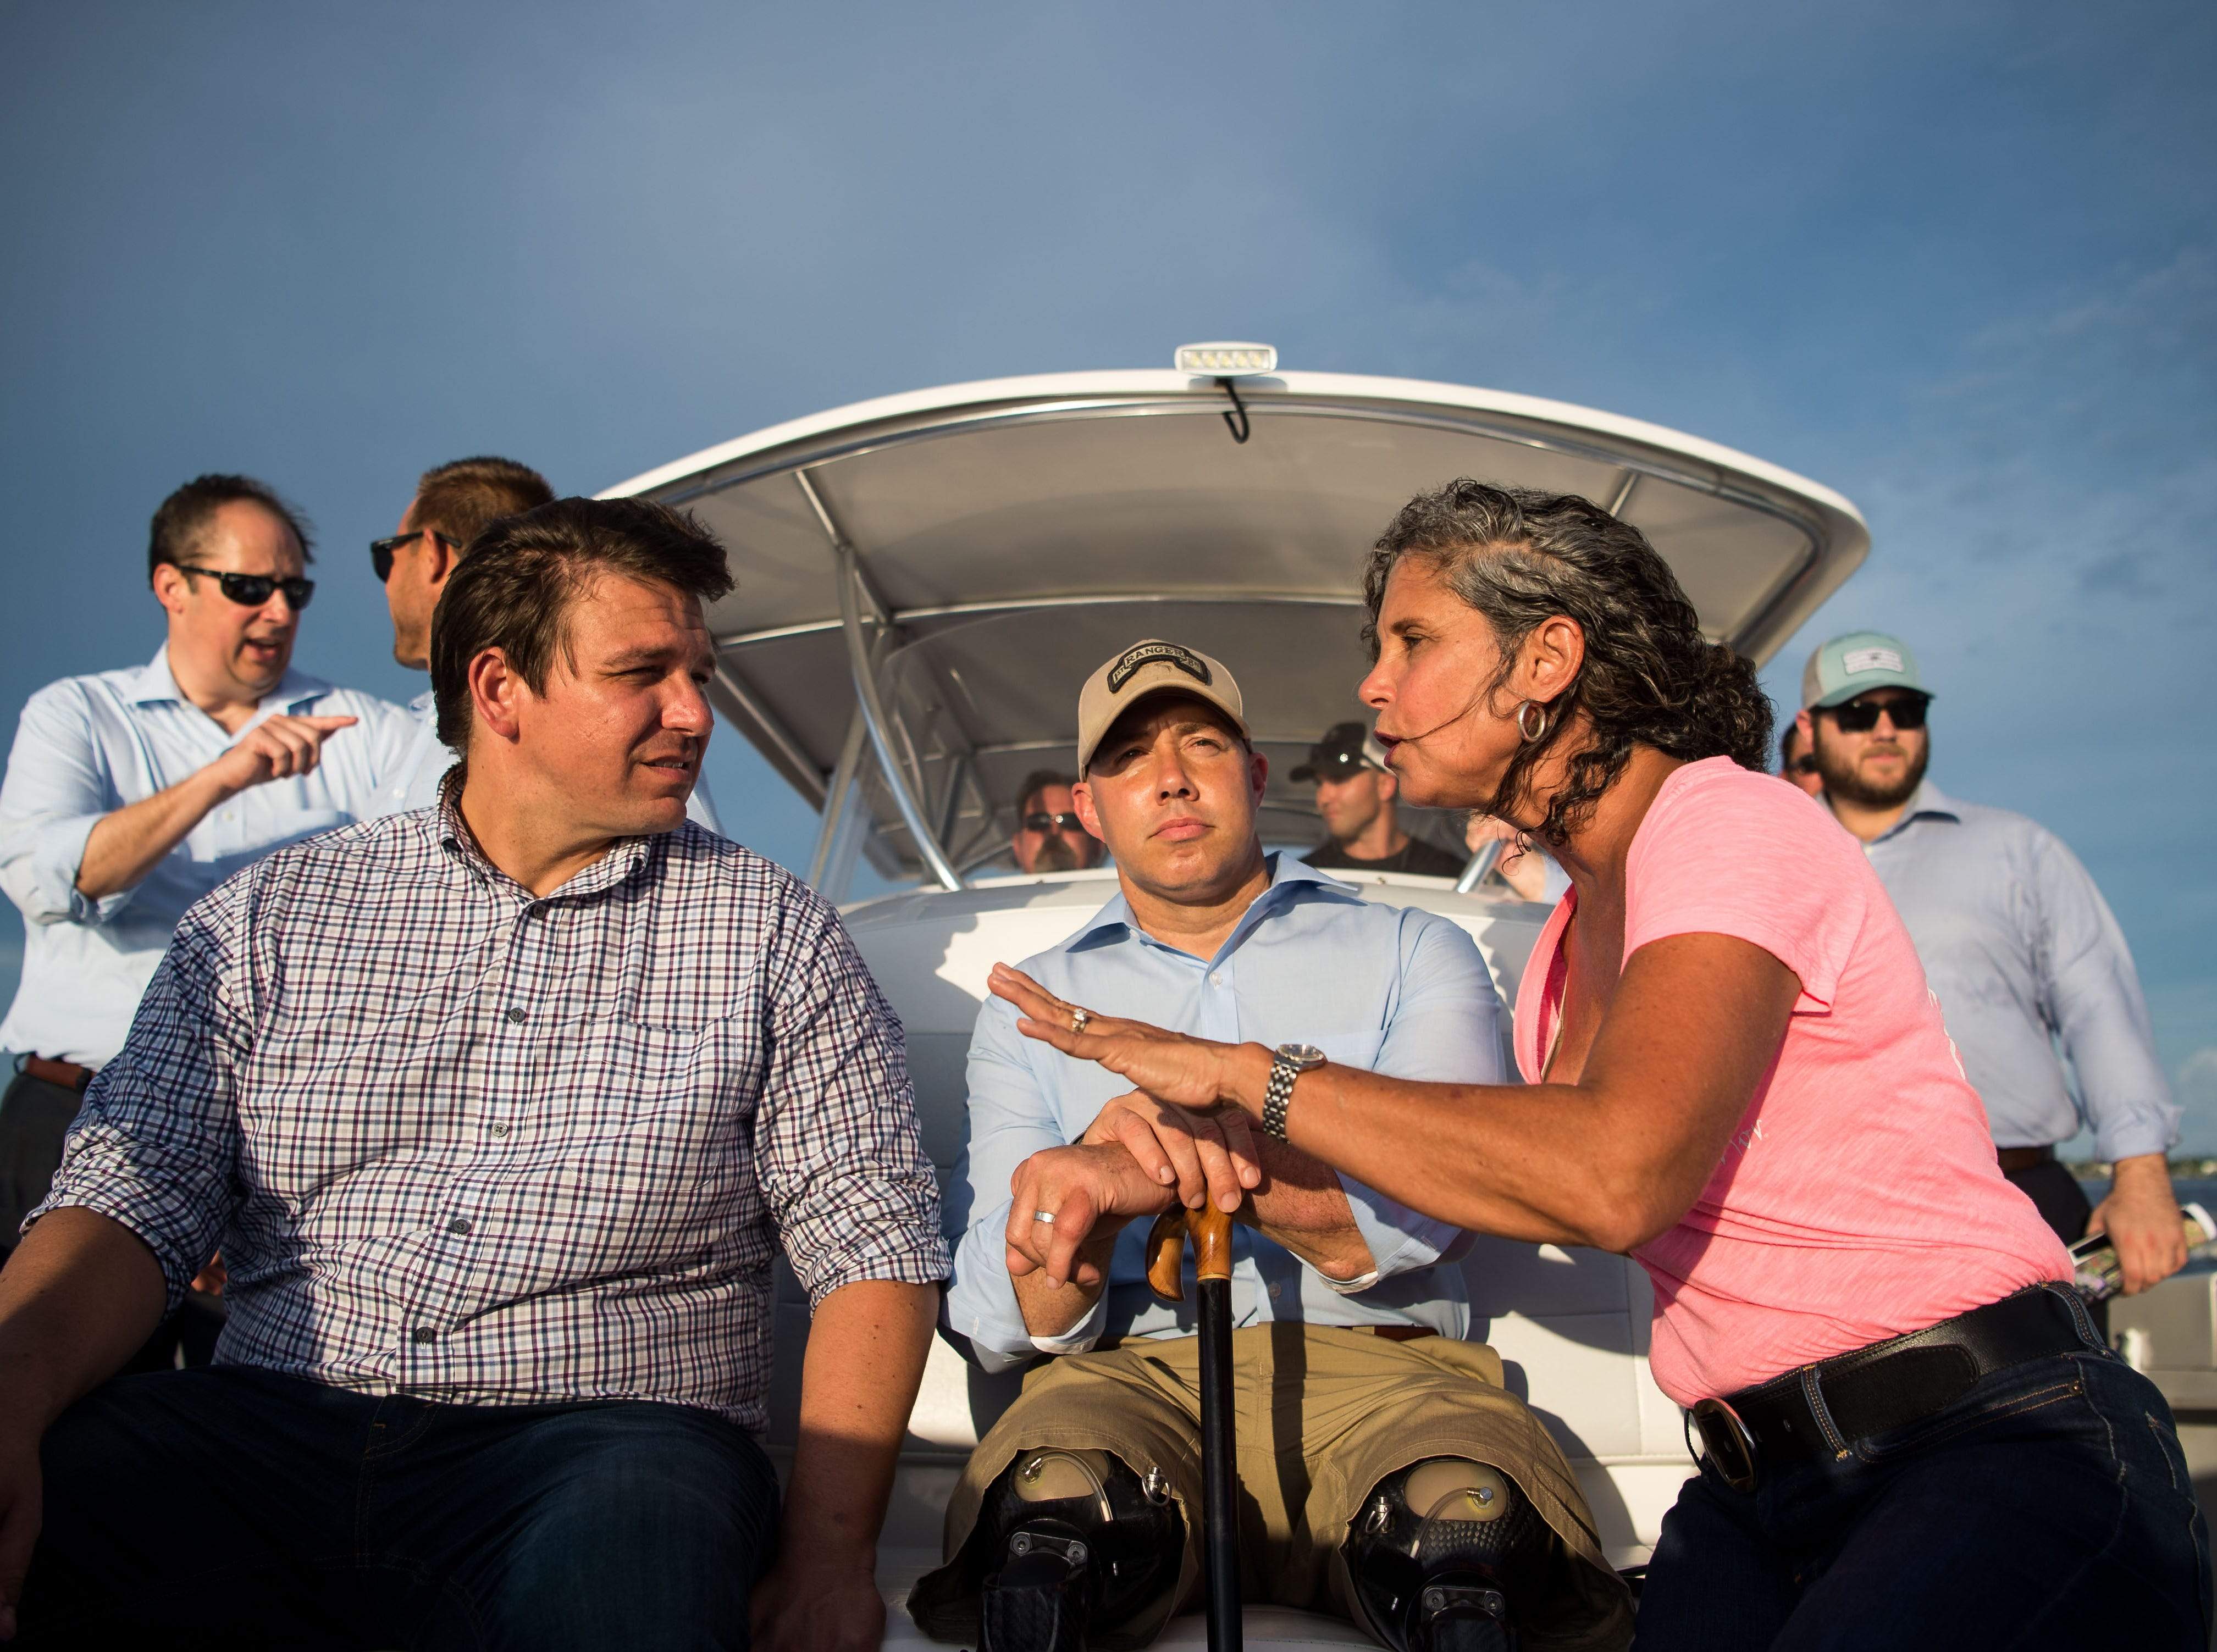 U.S. Reps. Ron DeSantis (left) and Brian Mast (center) speak with environmental advocate Jacqui Thurlow-Lippisch on Monday, Aug. 20, 2018, during a boat tour to see and discuss the algae crisis in the St. Lucie River.